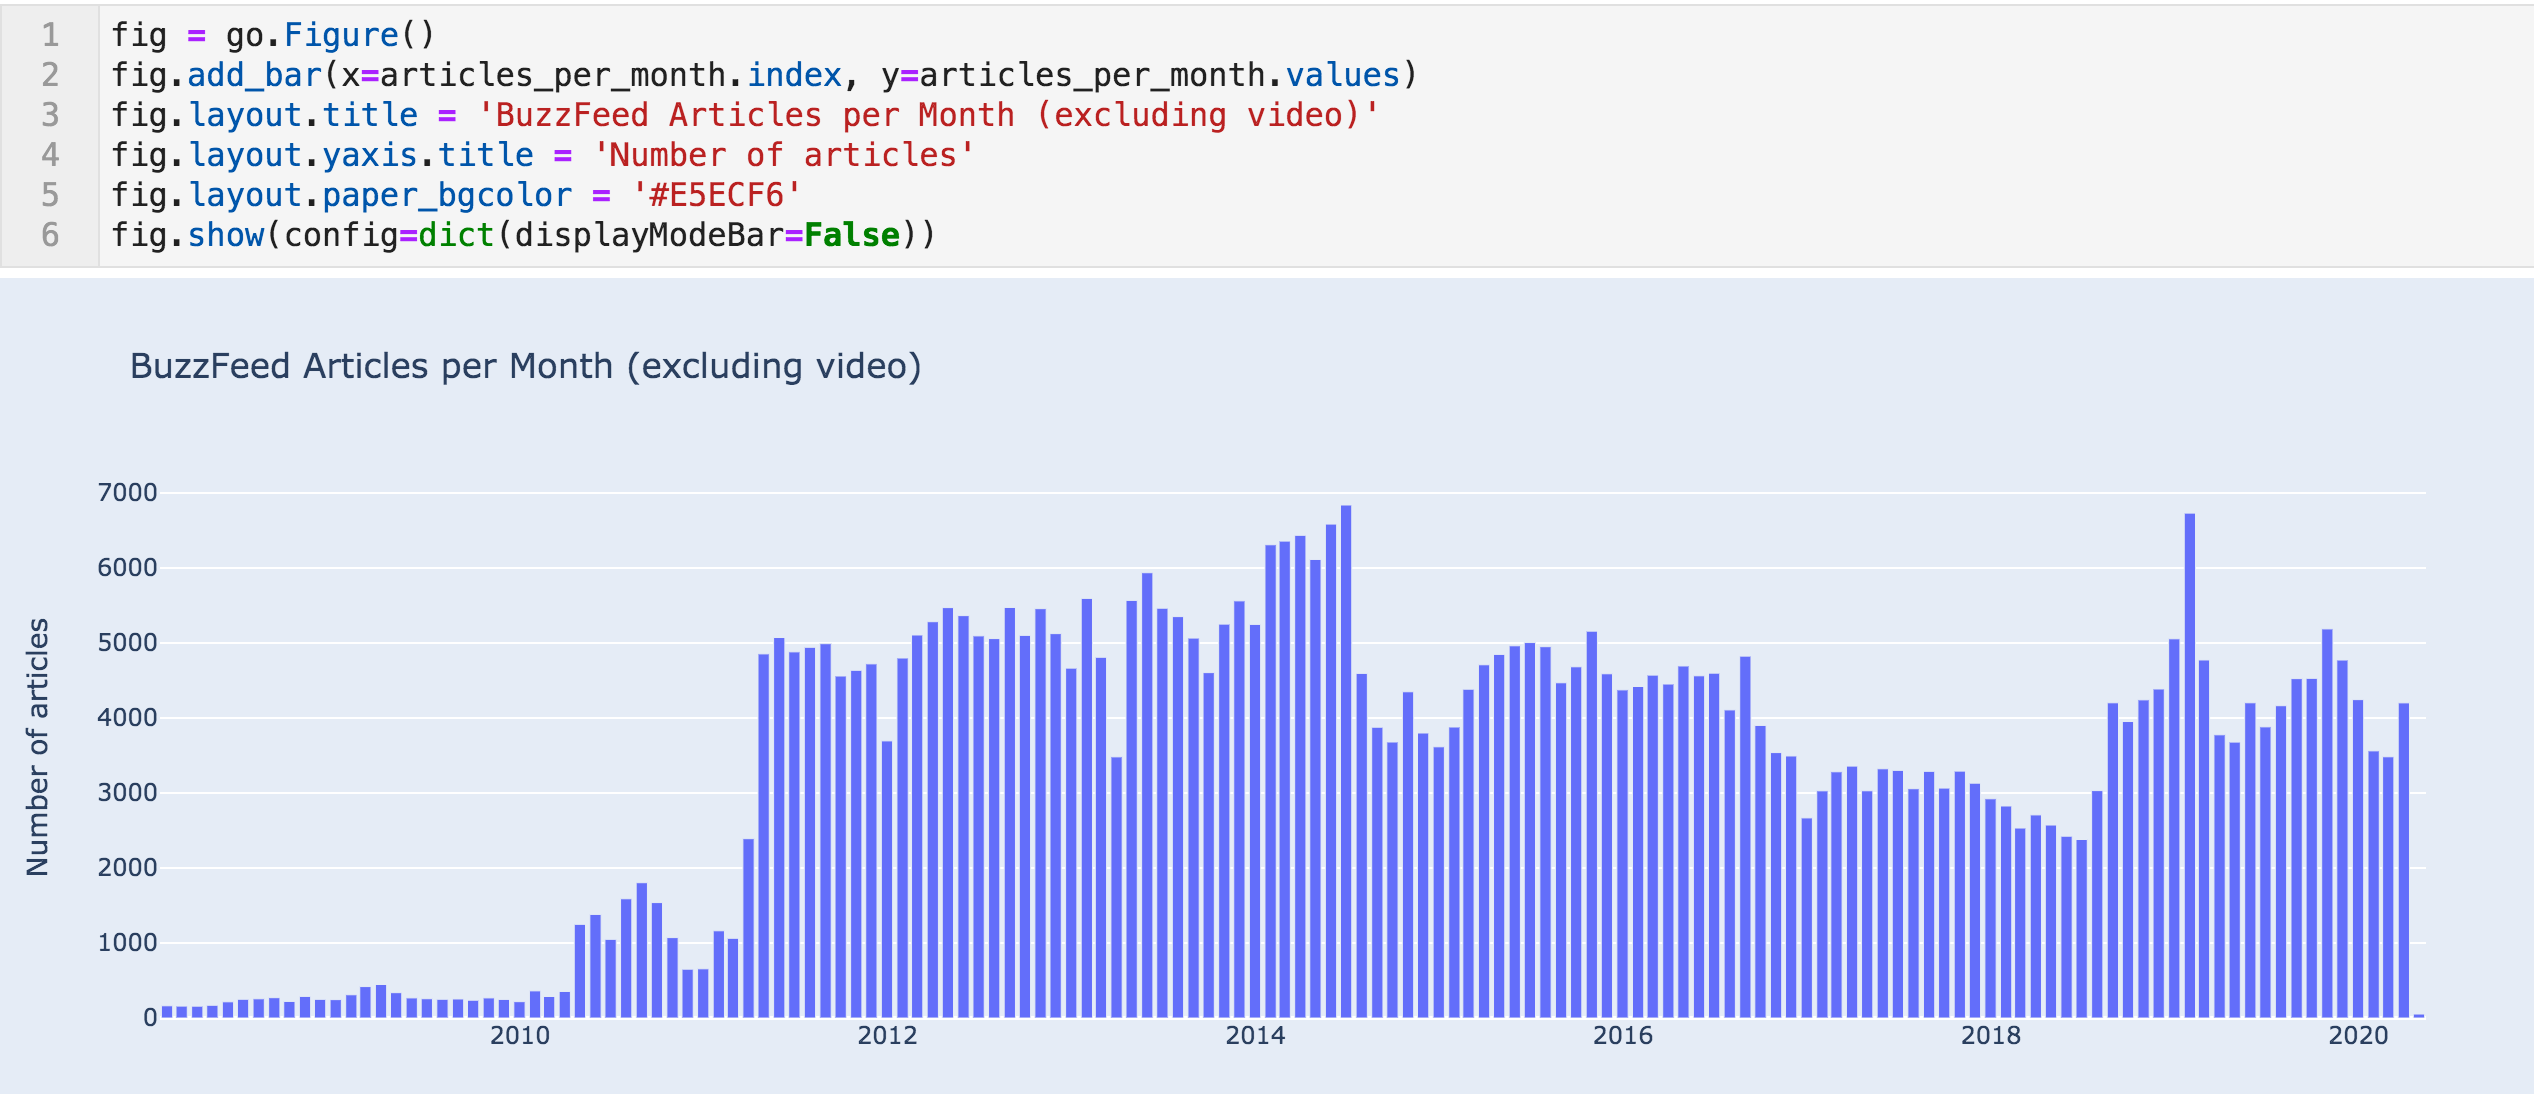 A large bar chat with monthly article trend data